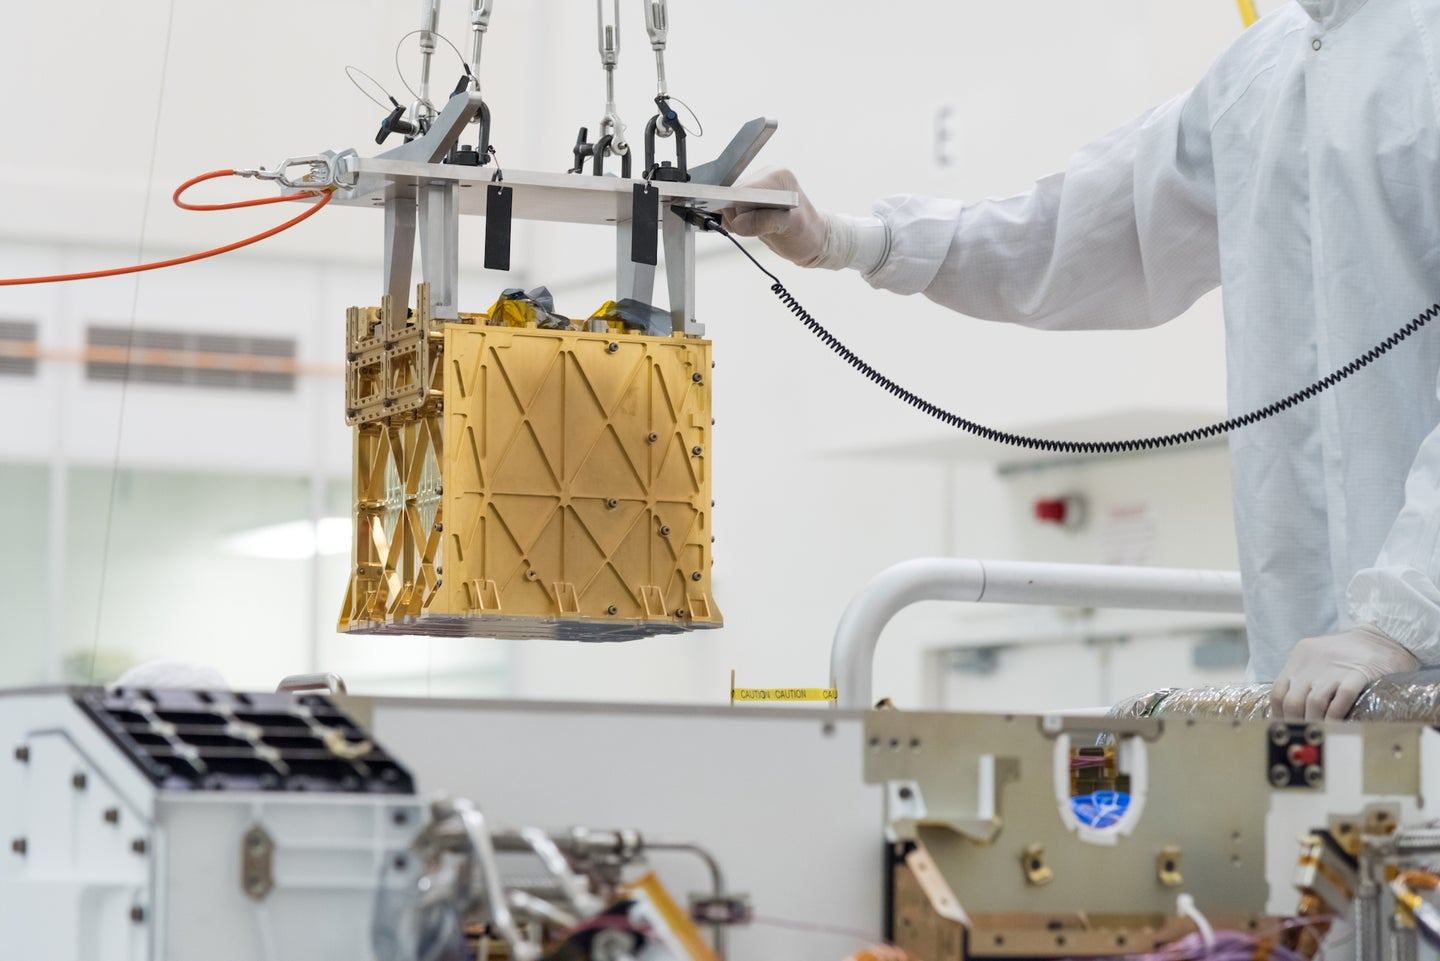 The MOXIE instrument before it was lowered into NASA's Perseverance Rover, which is currently settled on the surface of Mars.